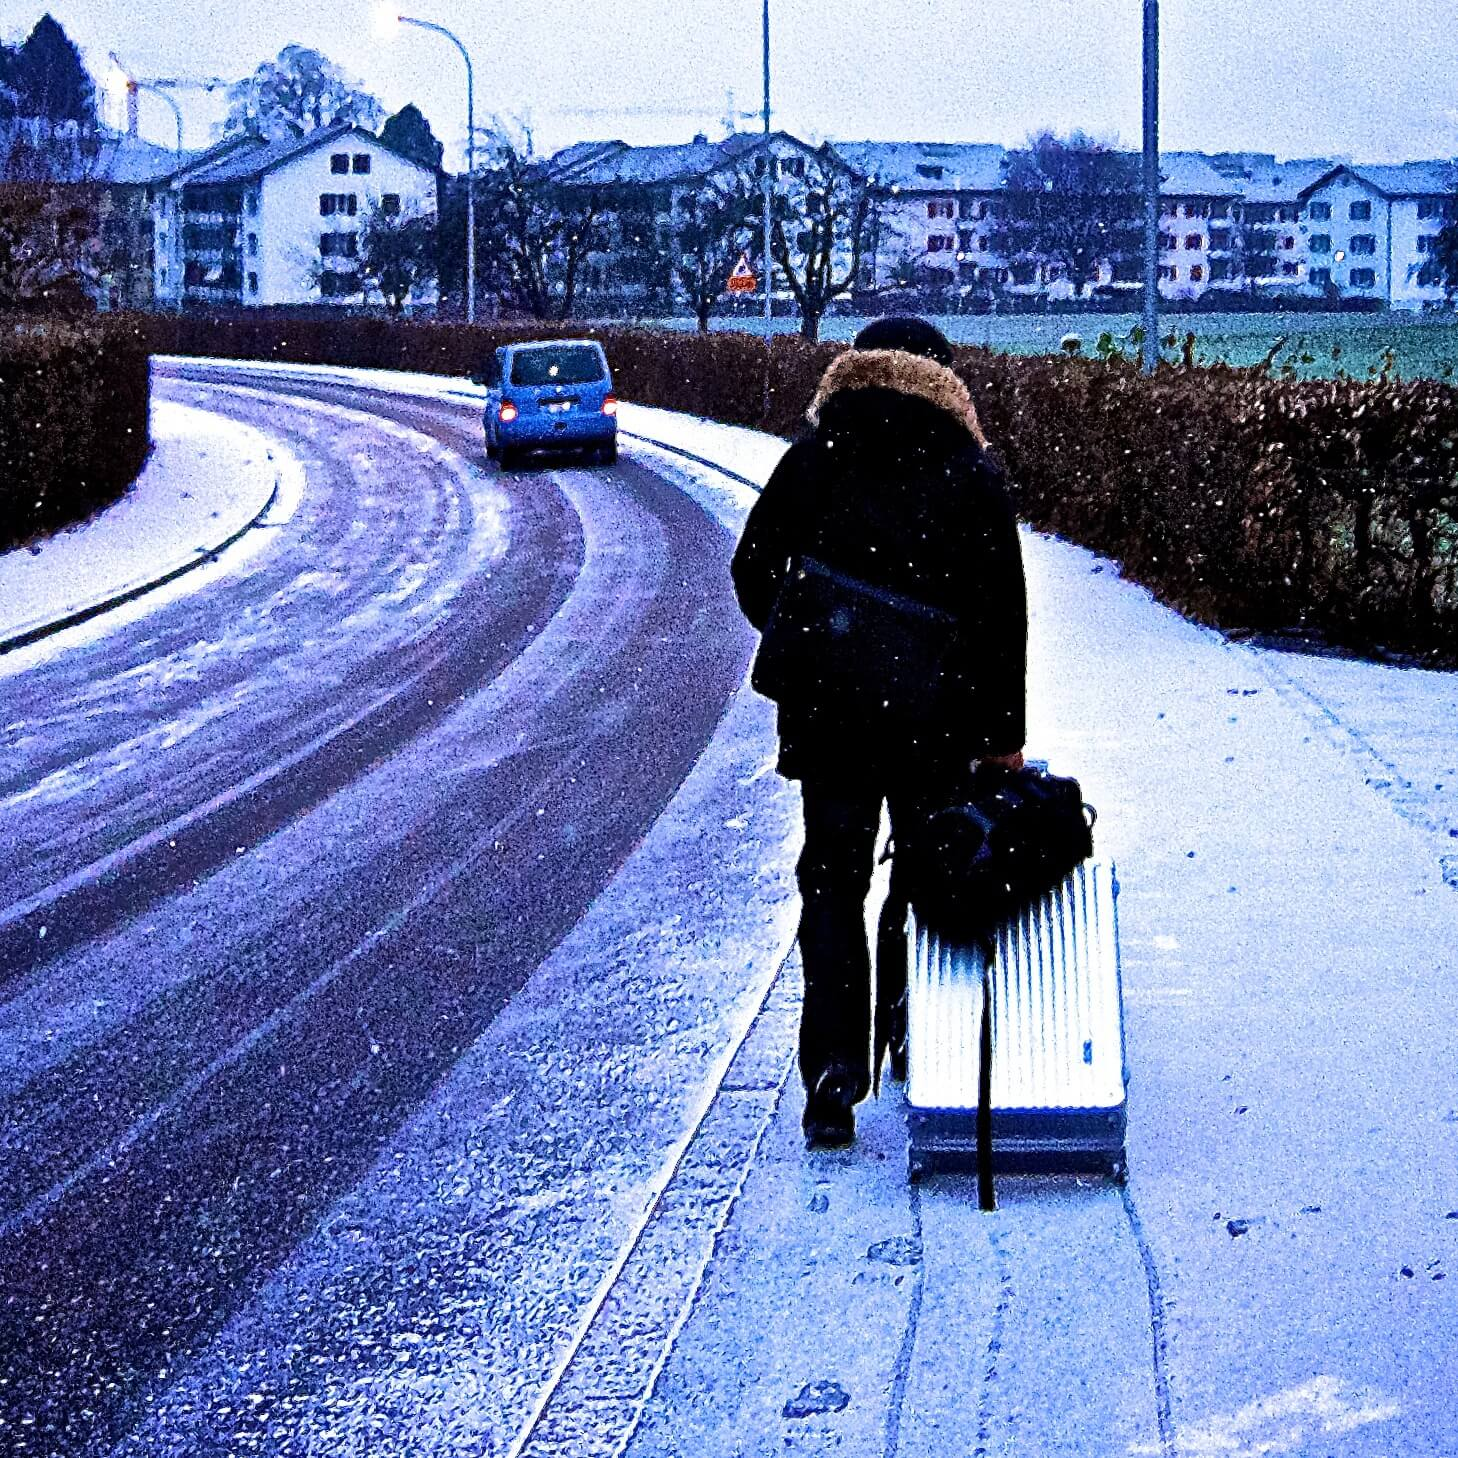 Time to Know About Some of the Most Important Winter Travel Tips!